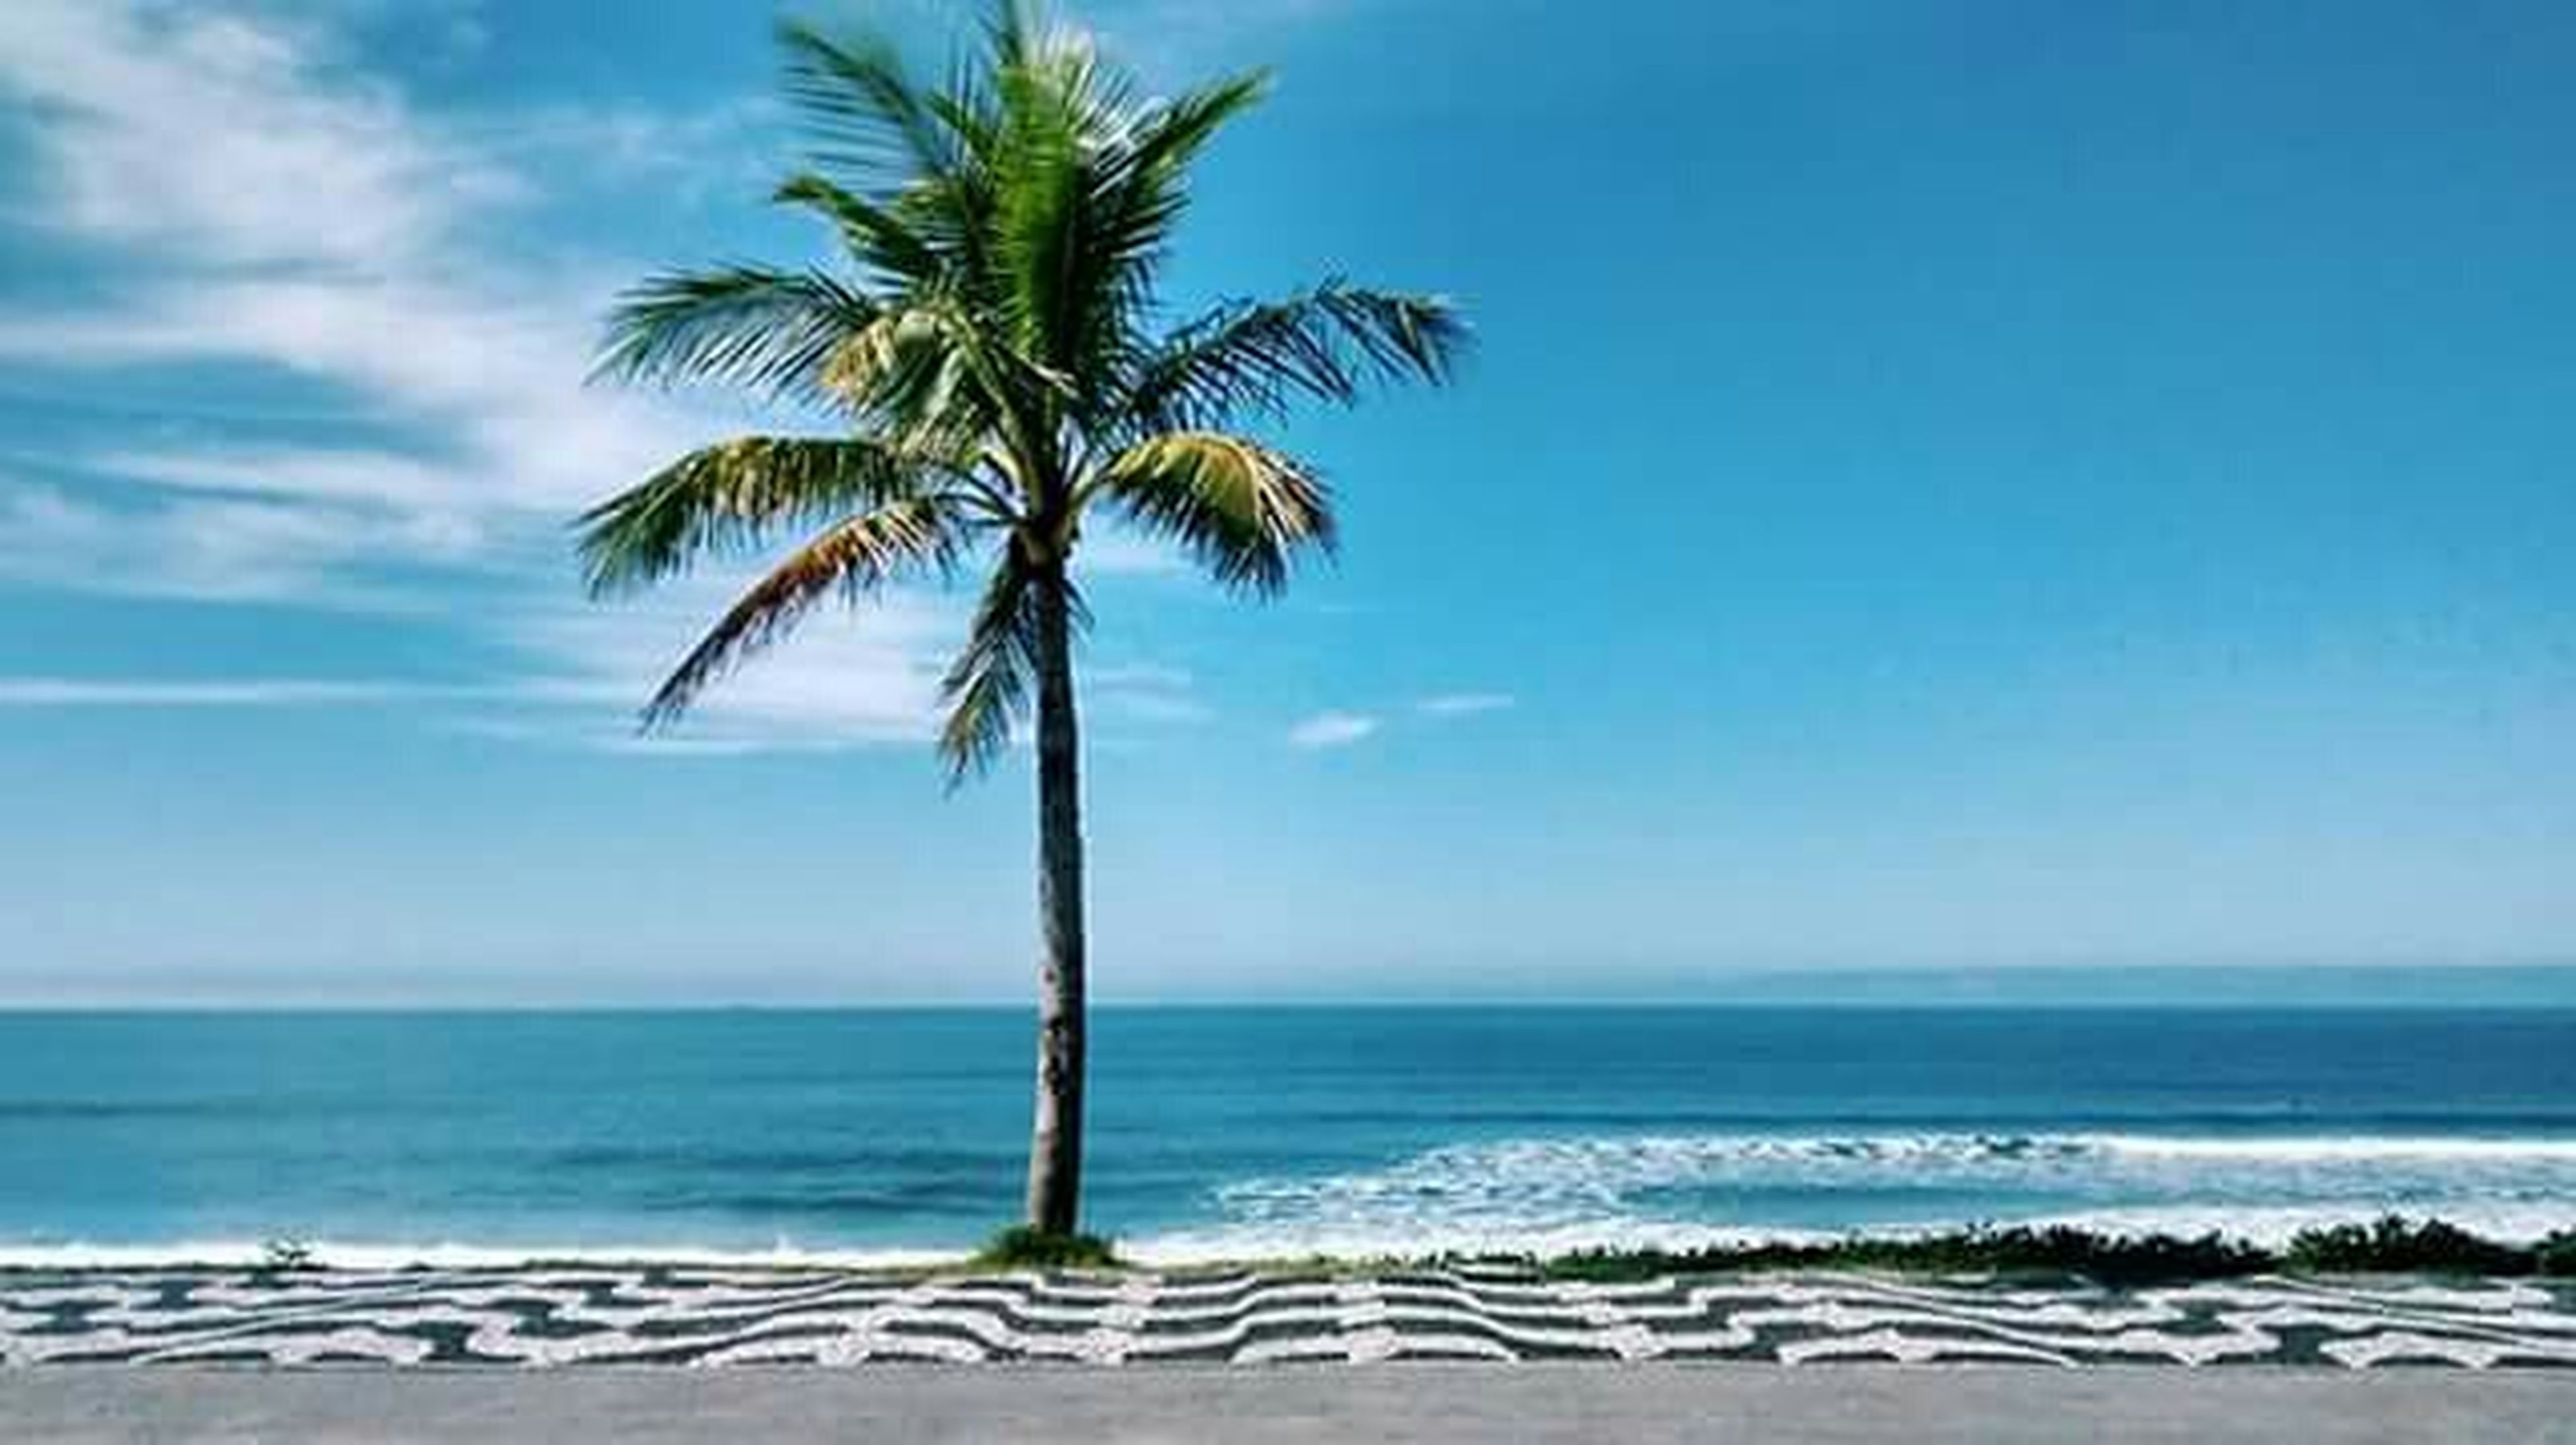 sea, horizon over water, palm tree, beach, water, tree, tranquility, tranquil scene, scenics, blue, beauty in nature, sky, shore, nature, tree trunk, sand, idyllic, vacations, tropical climate, growth